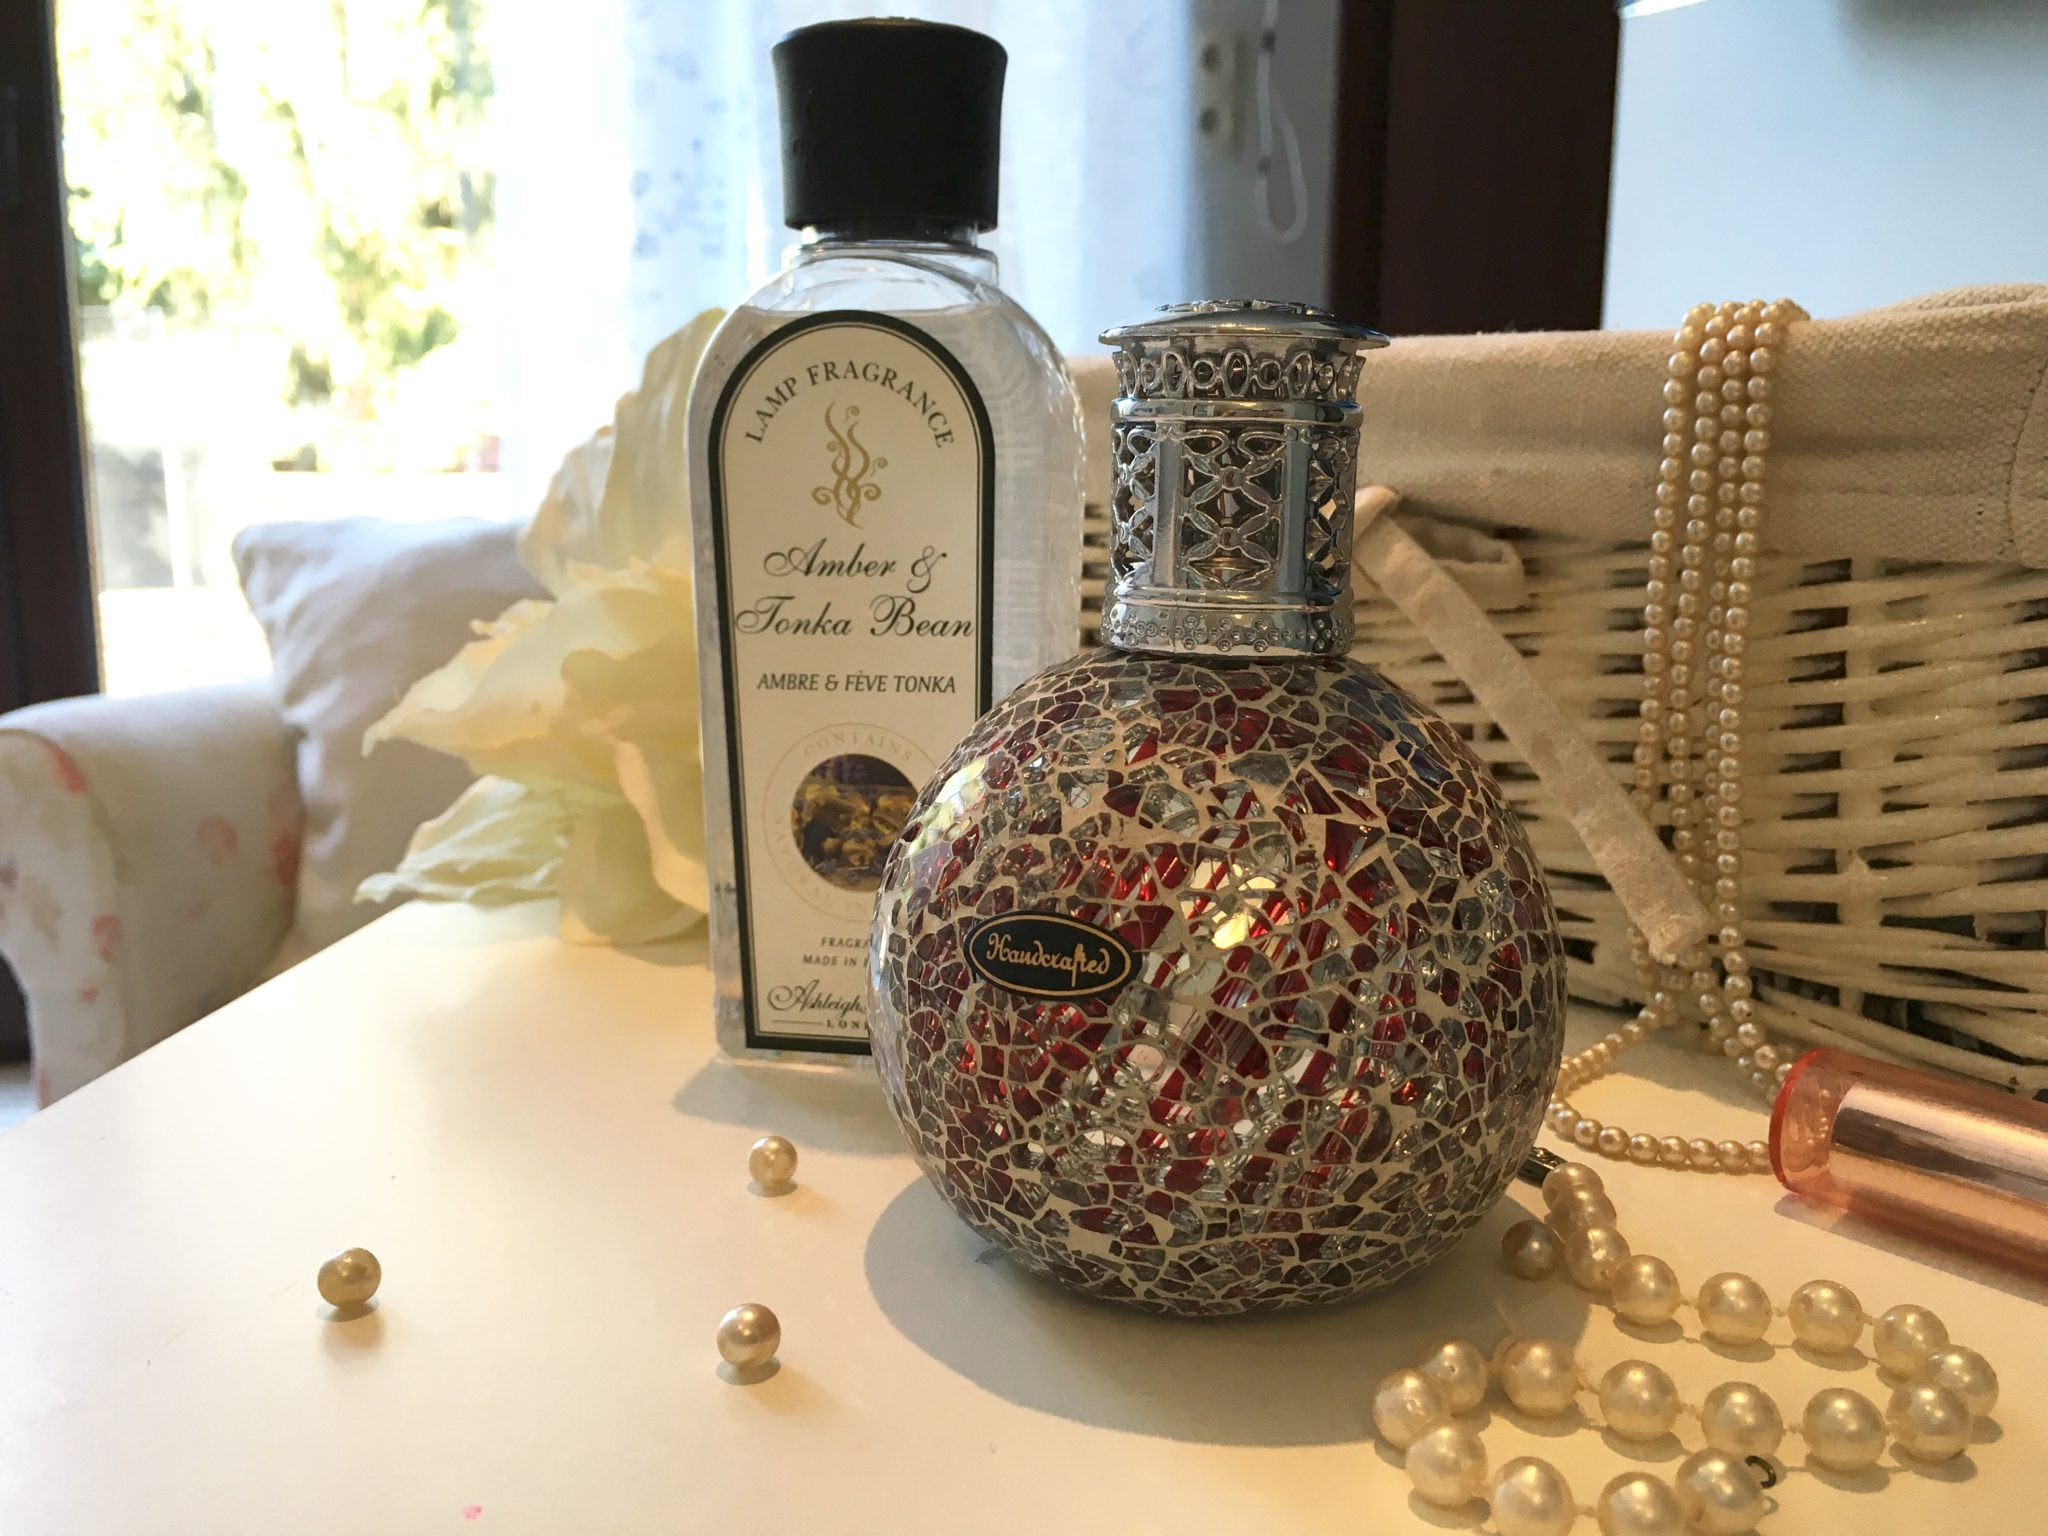 Lamp Fragrance - Amber & Tonka Bean